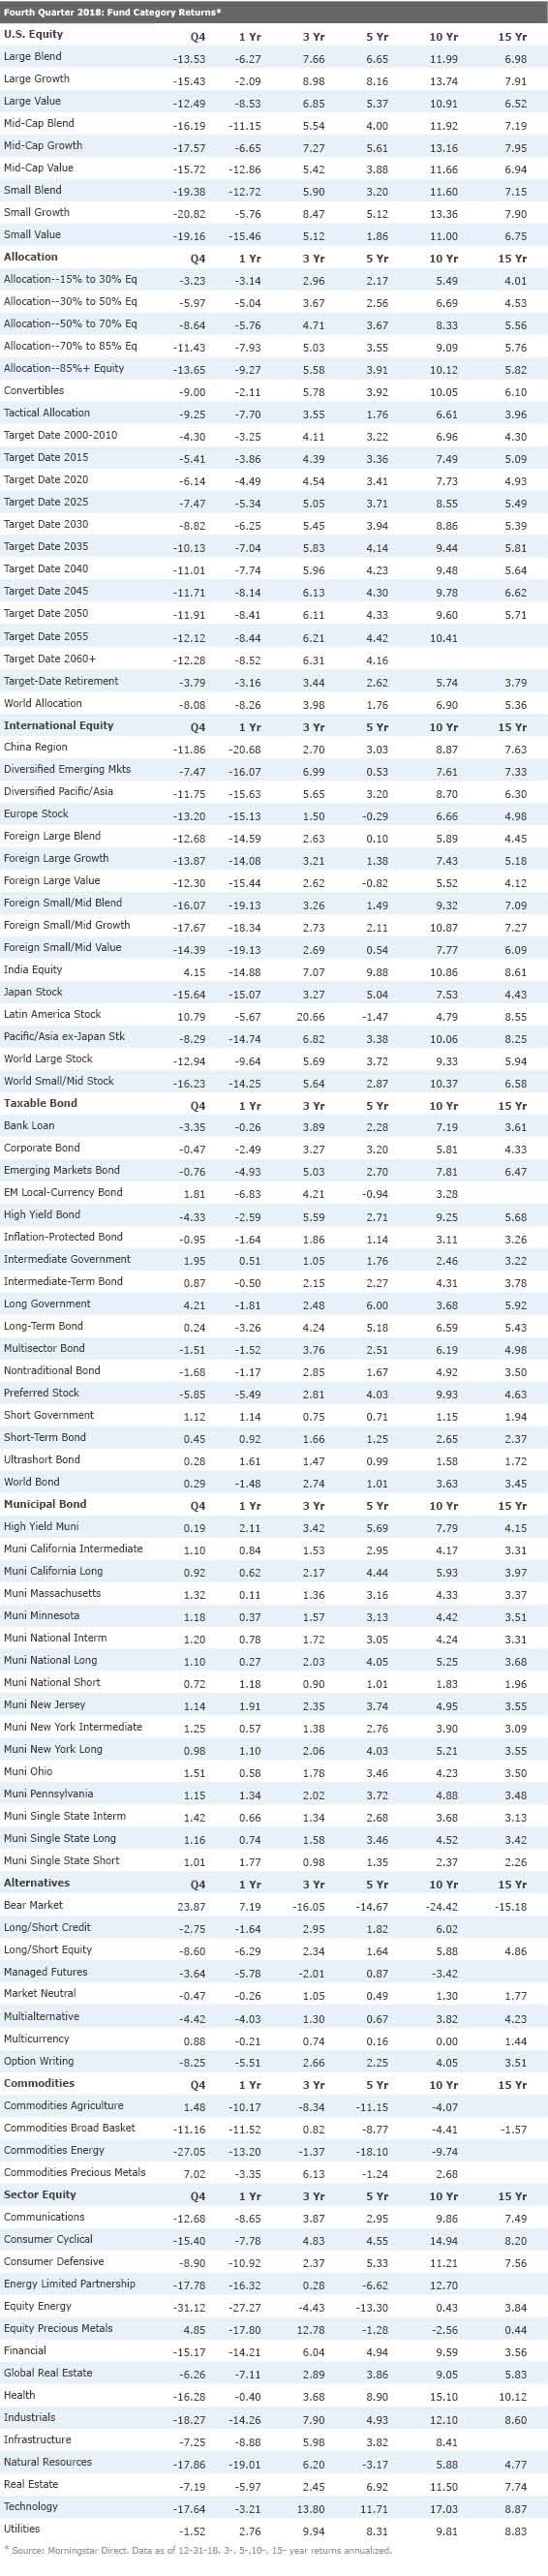 2018 Fund Category and Index Performance Data | Morningstar